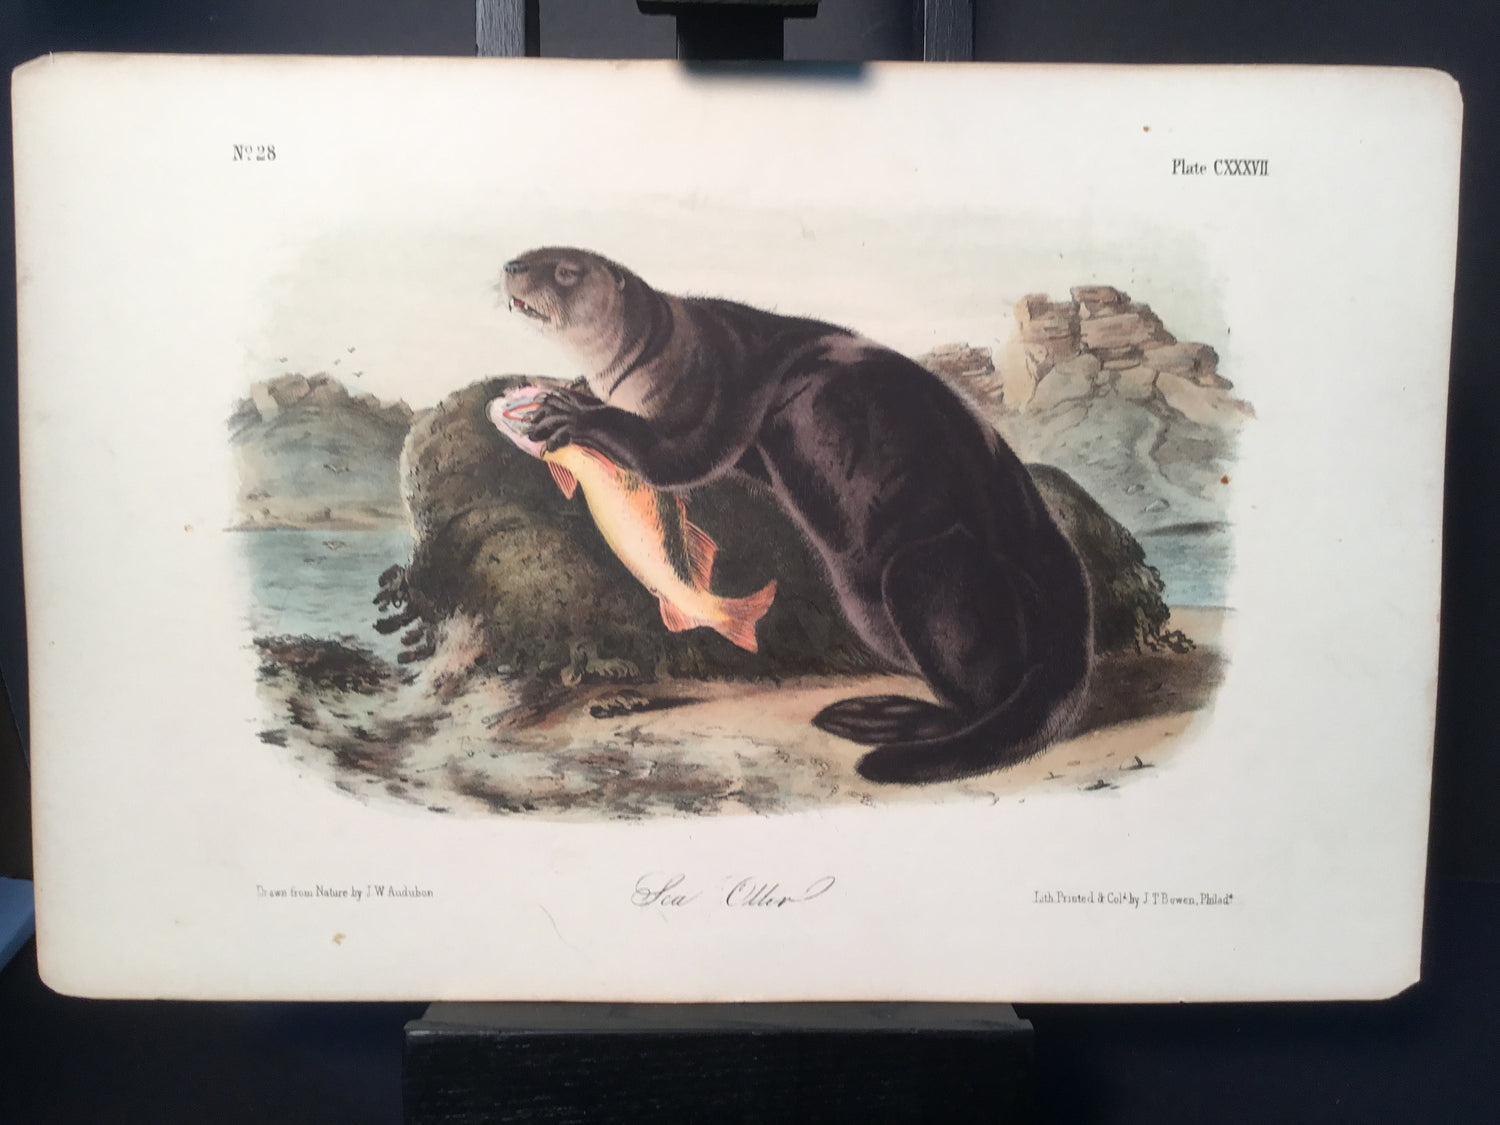 Lord-Hopkins Collection - Sea Otter